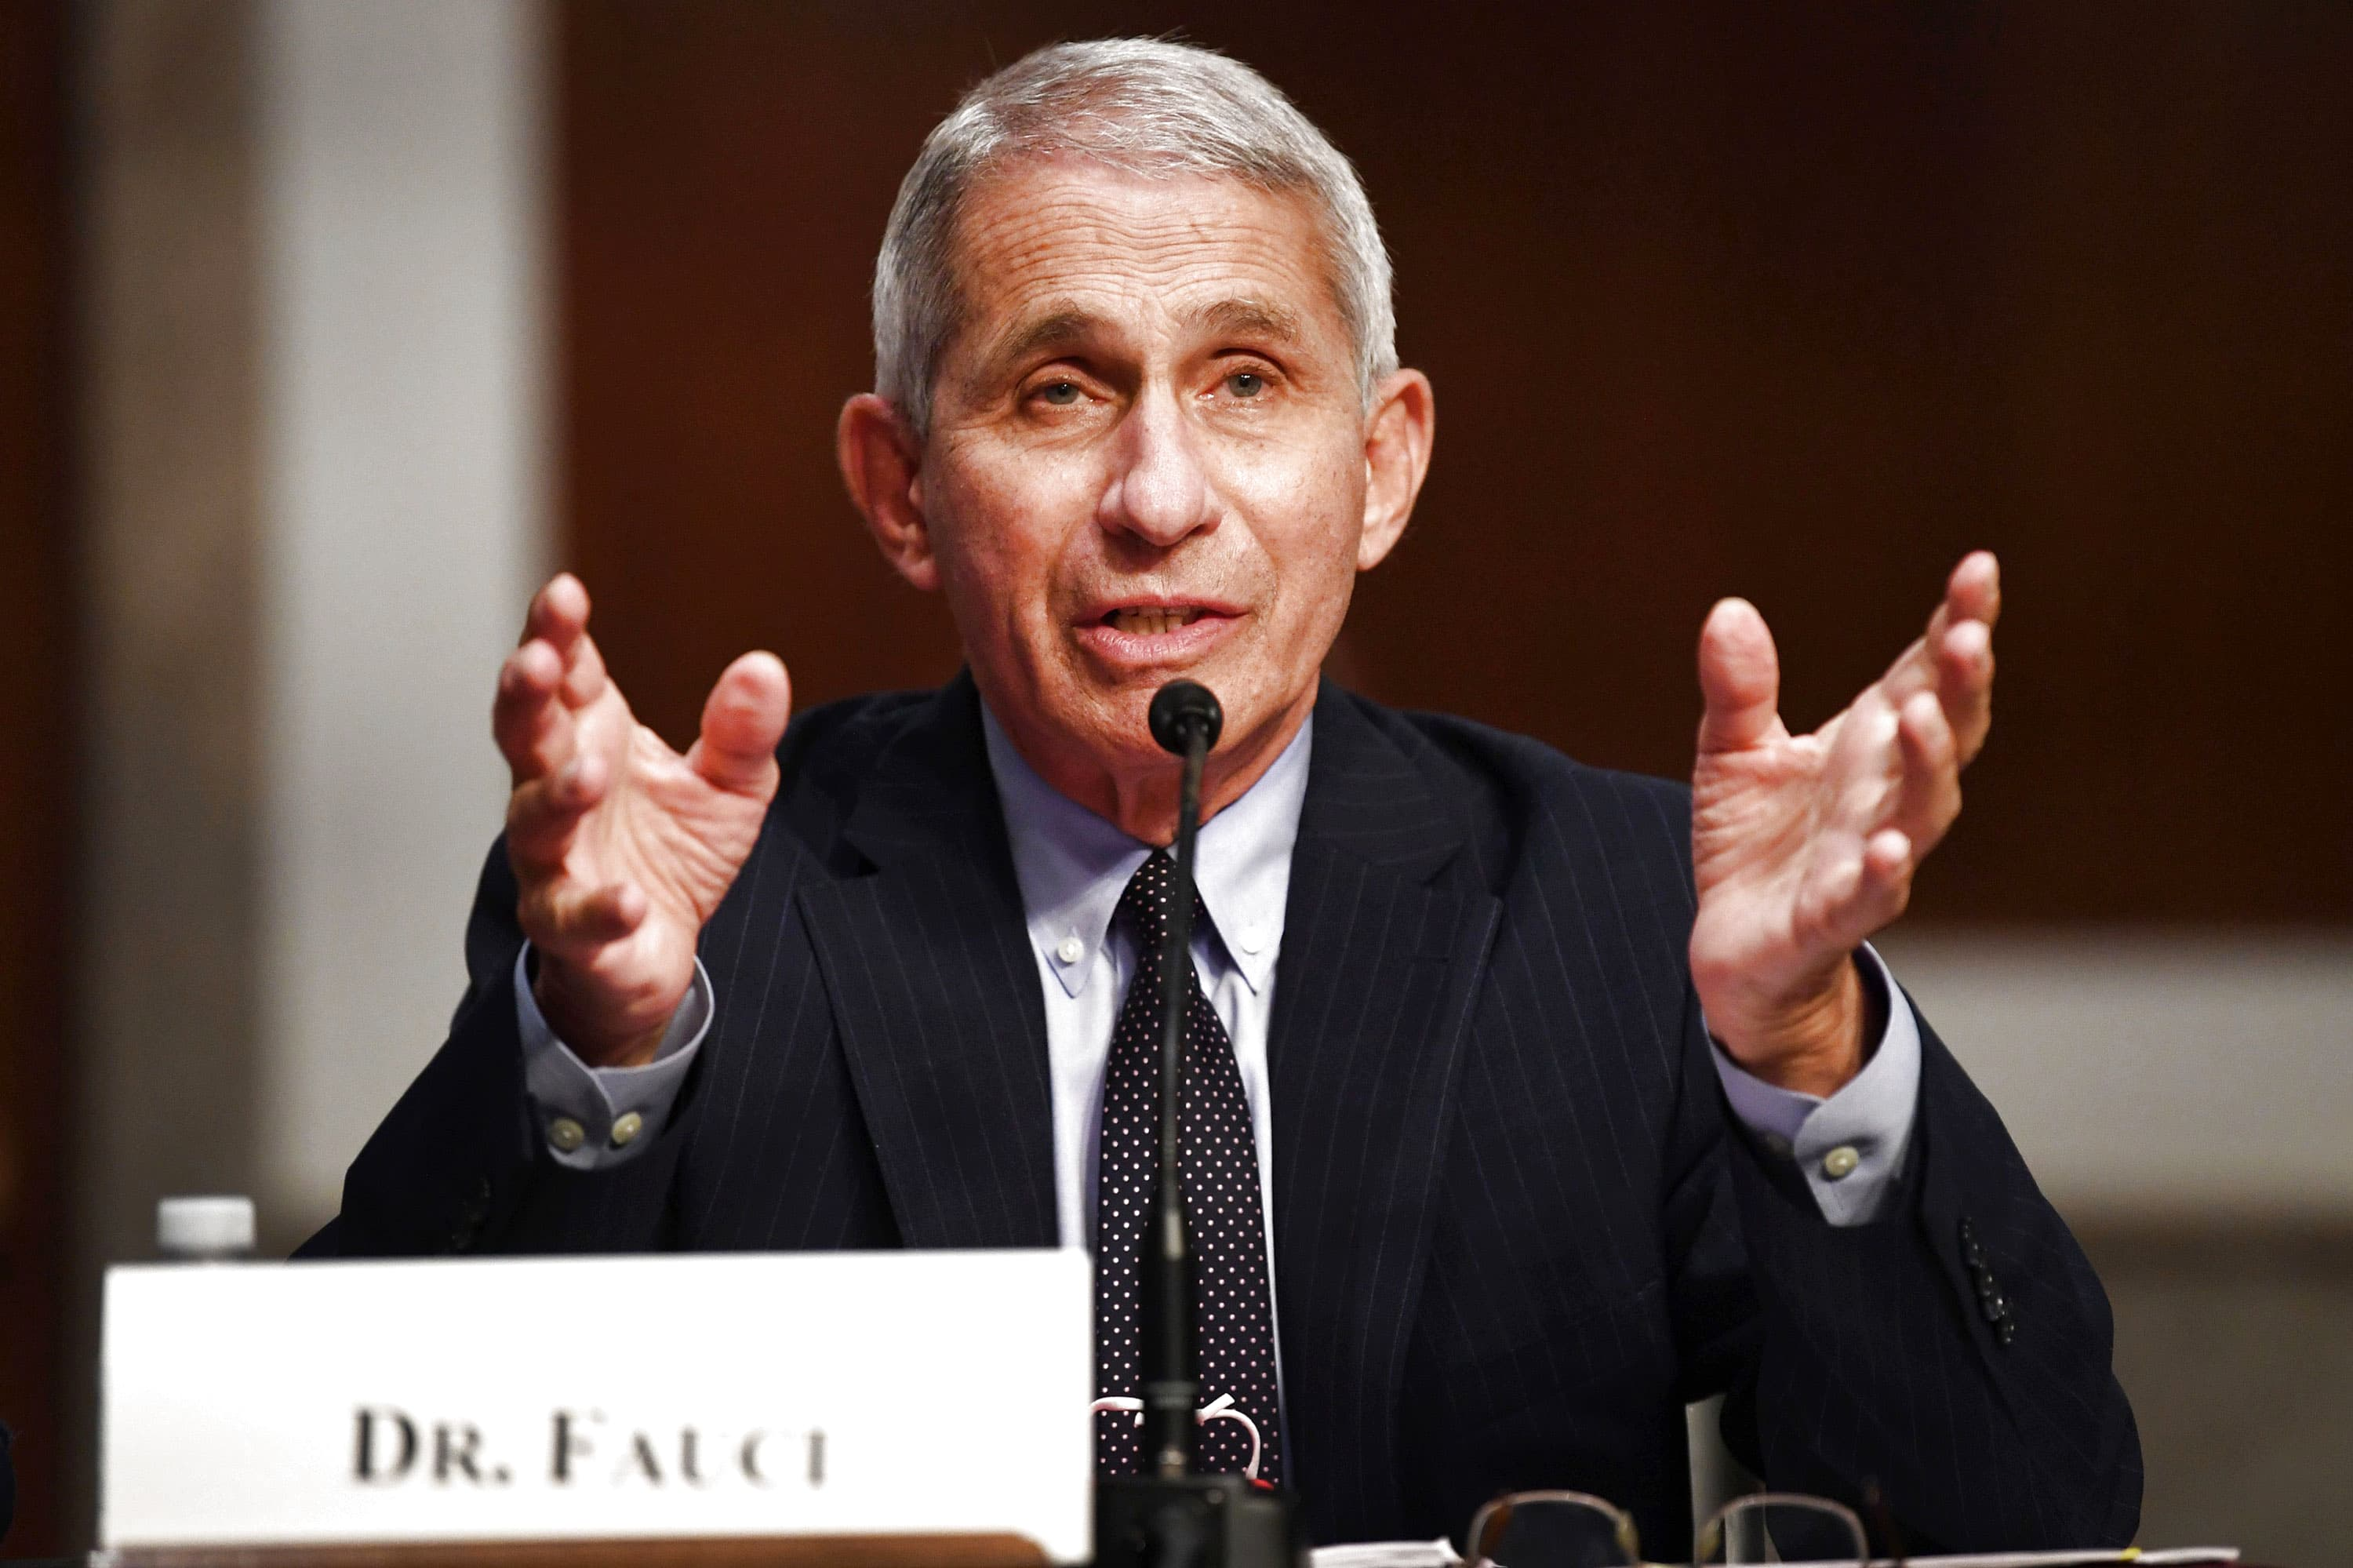 Dr. Anthony Fauci says U.S. is in a 'bad position' as daily coronavirus cases hit record highs